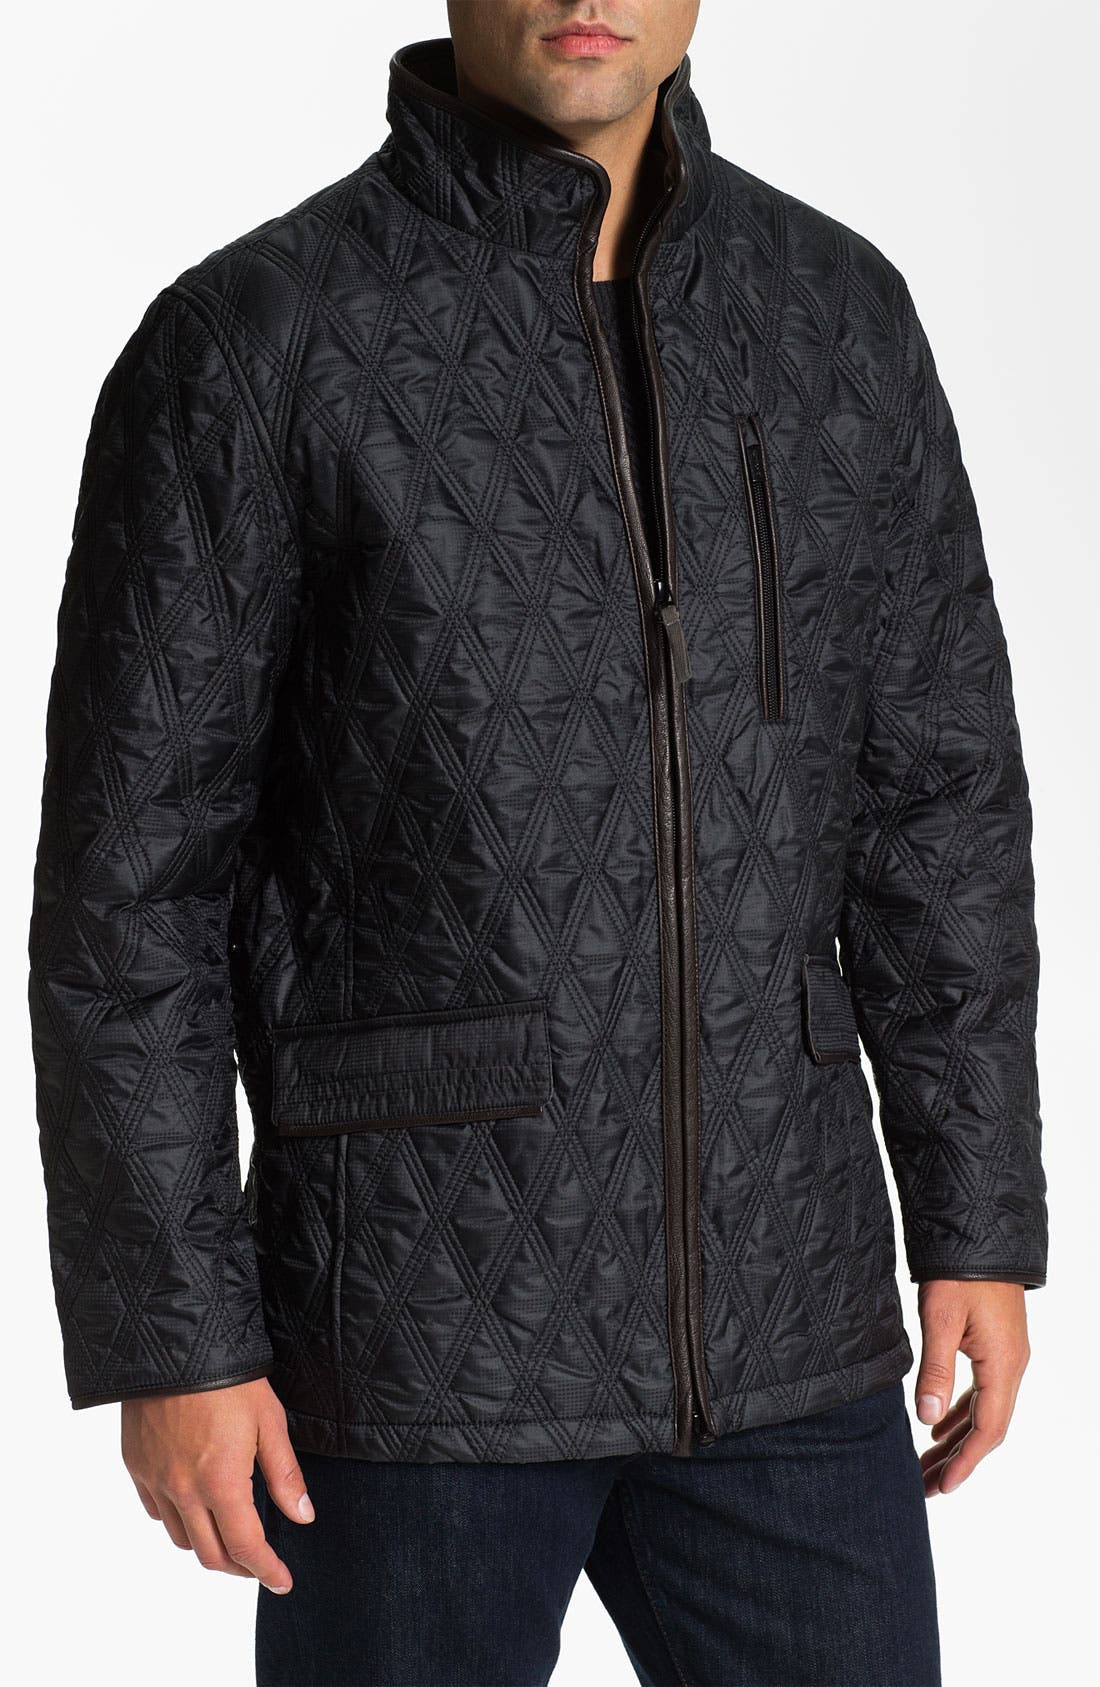 Main Image - RAINFOREST Quilted Jacket